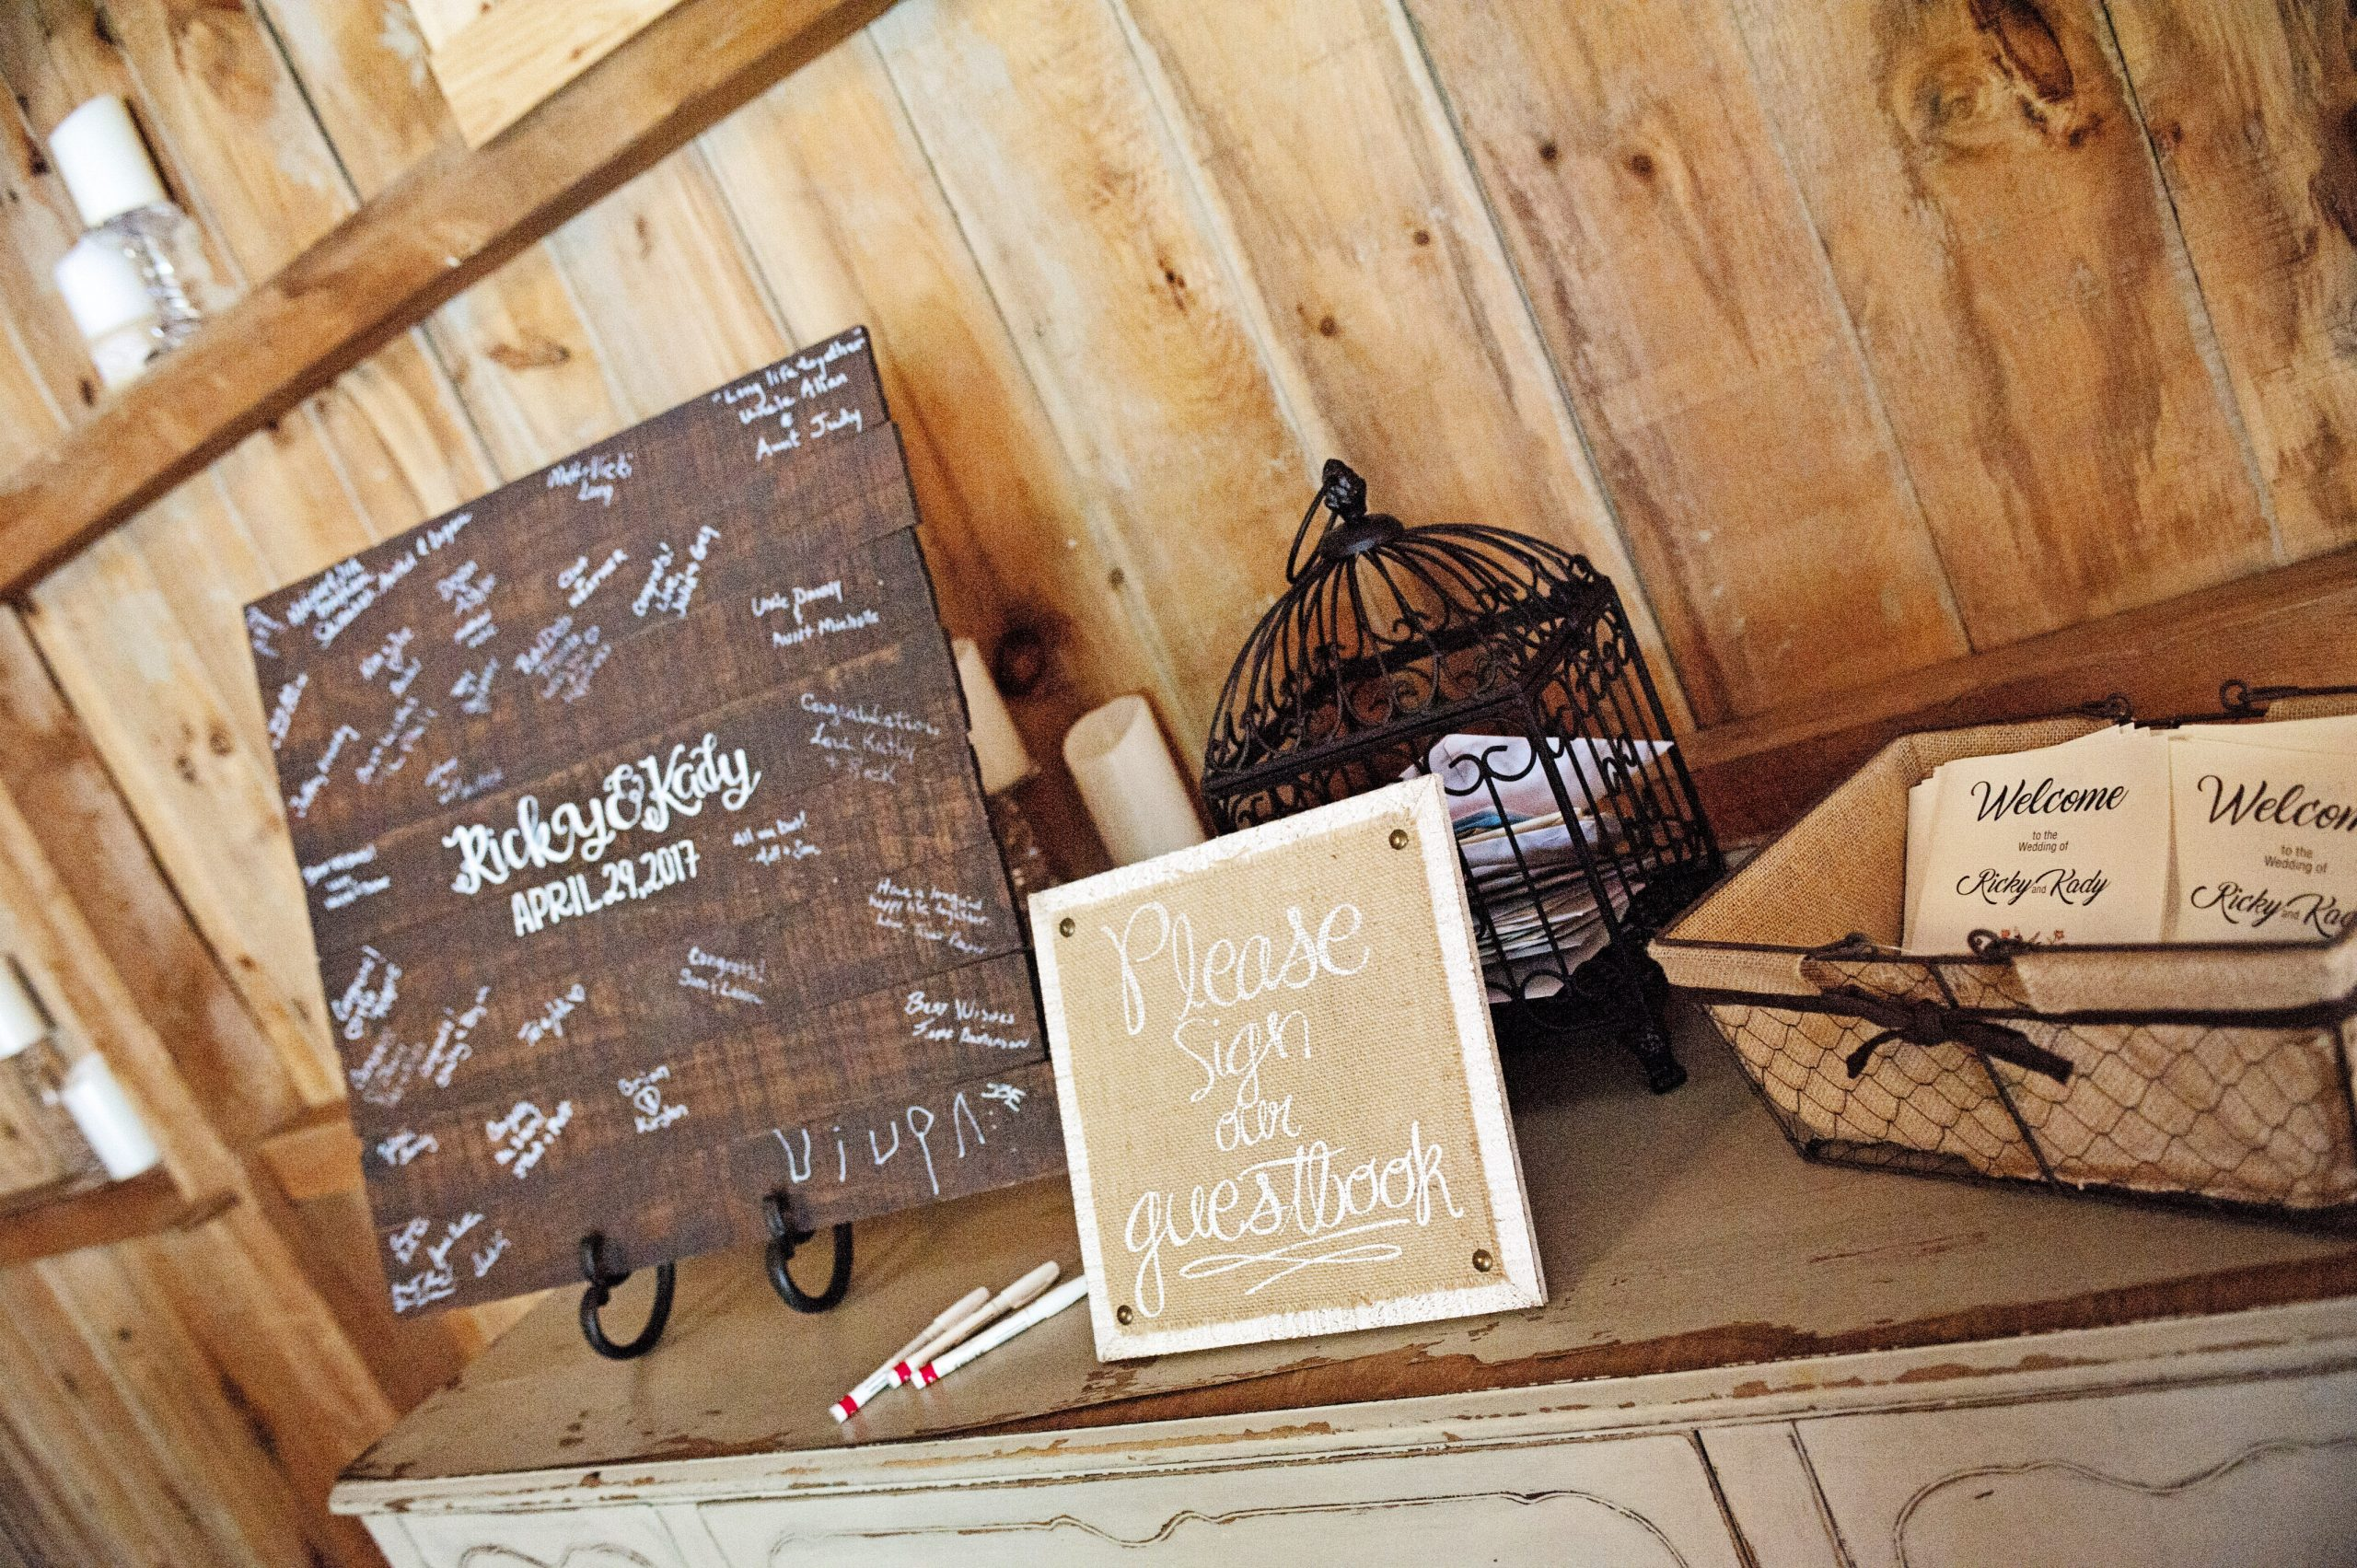 As guests walk in, they sign the guestbook entering the barns of Lakeview Farms in York, PA. Capturing this is Lovefusion Photography. Lakeview Farms of York, PA offers couples a chance to bring it down a notch and really wnjoy the company you have. Lovefusion beautifully displays that with this picture of the simple, yet elegant reception hall. Featured on Dream Weddings.